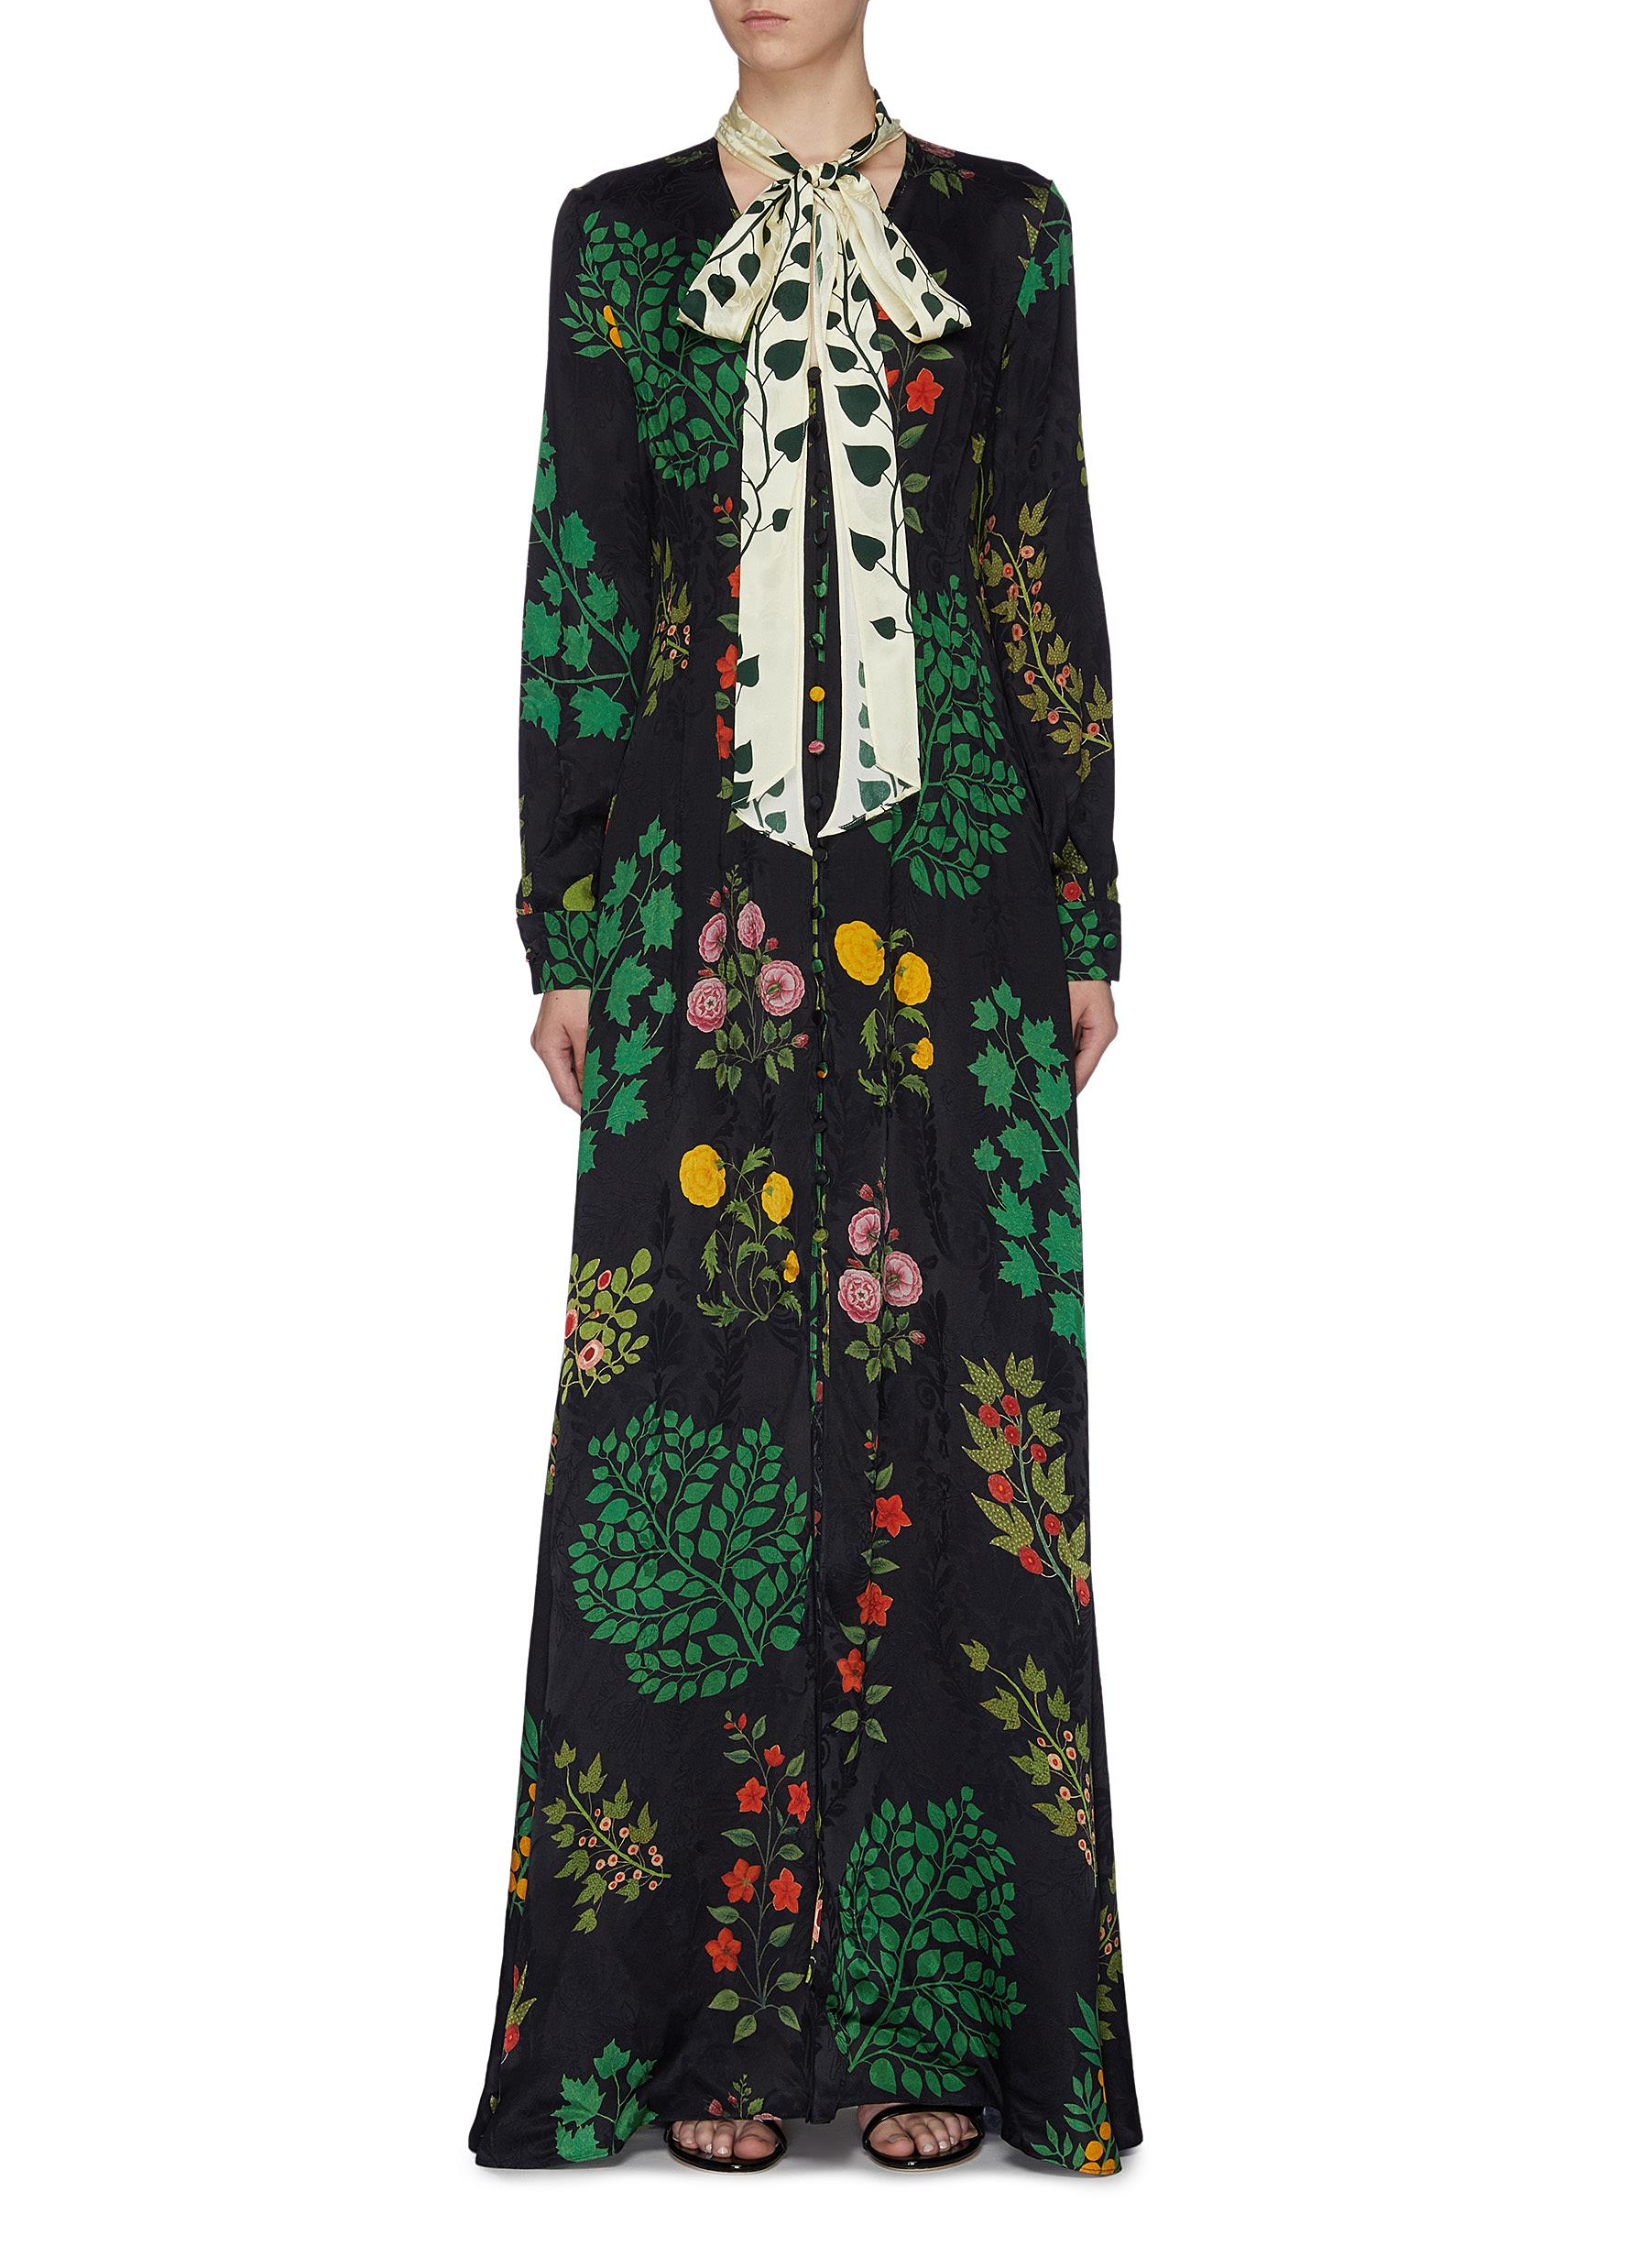 Colourblock sash tie neck botanical print silk dress by Oscar De La Renta